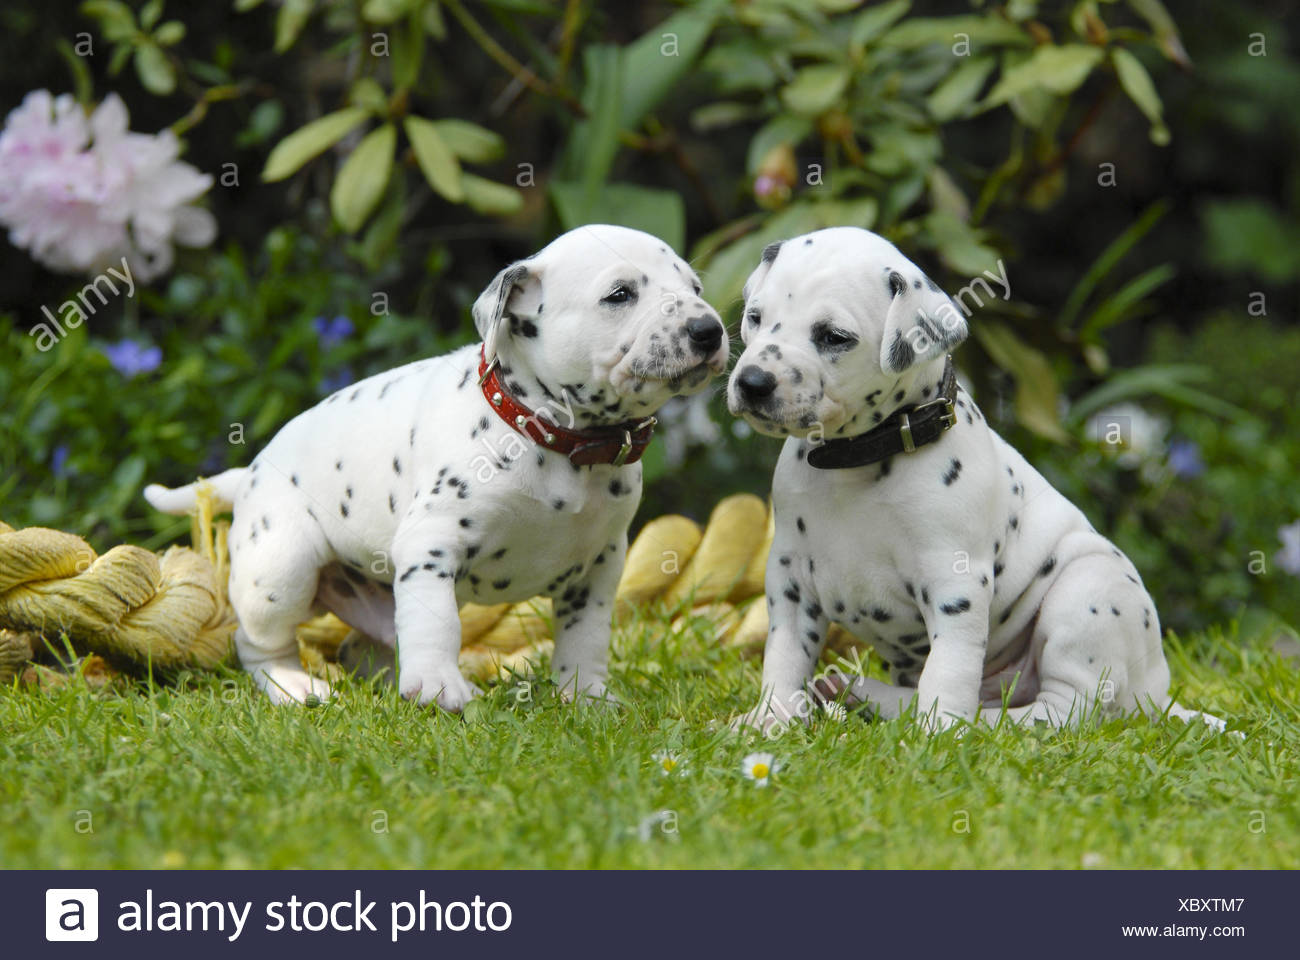 Two Dalmatian puppies three weeks old side by side - Stock Image